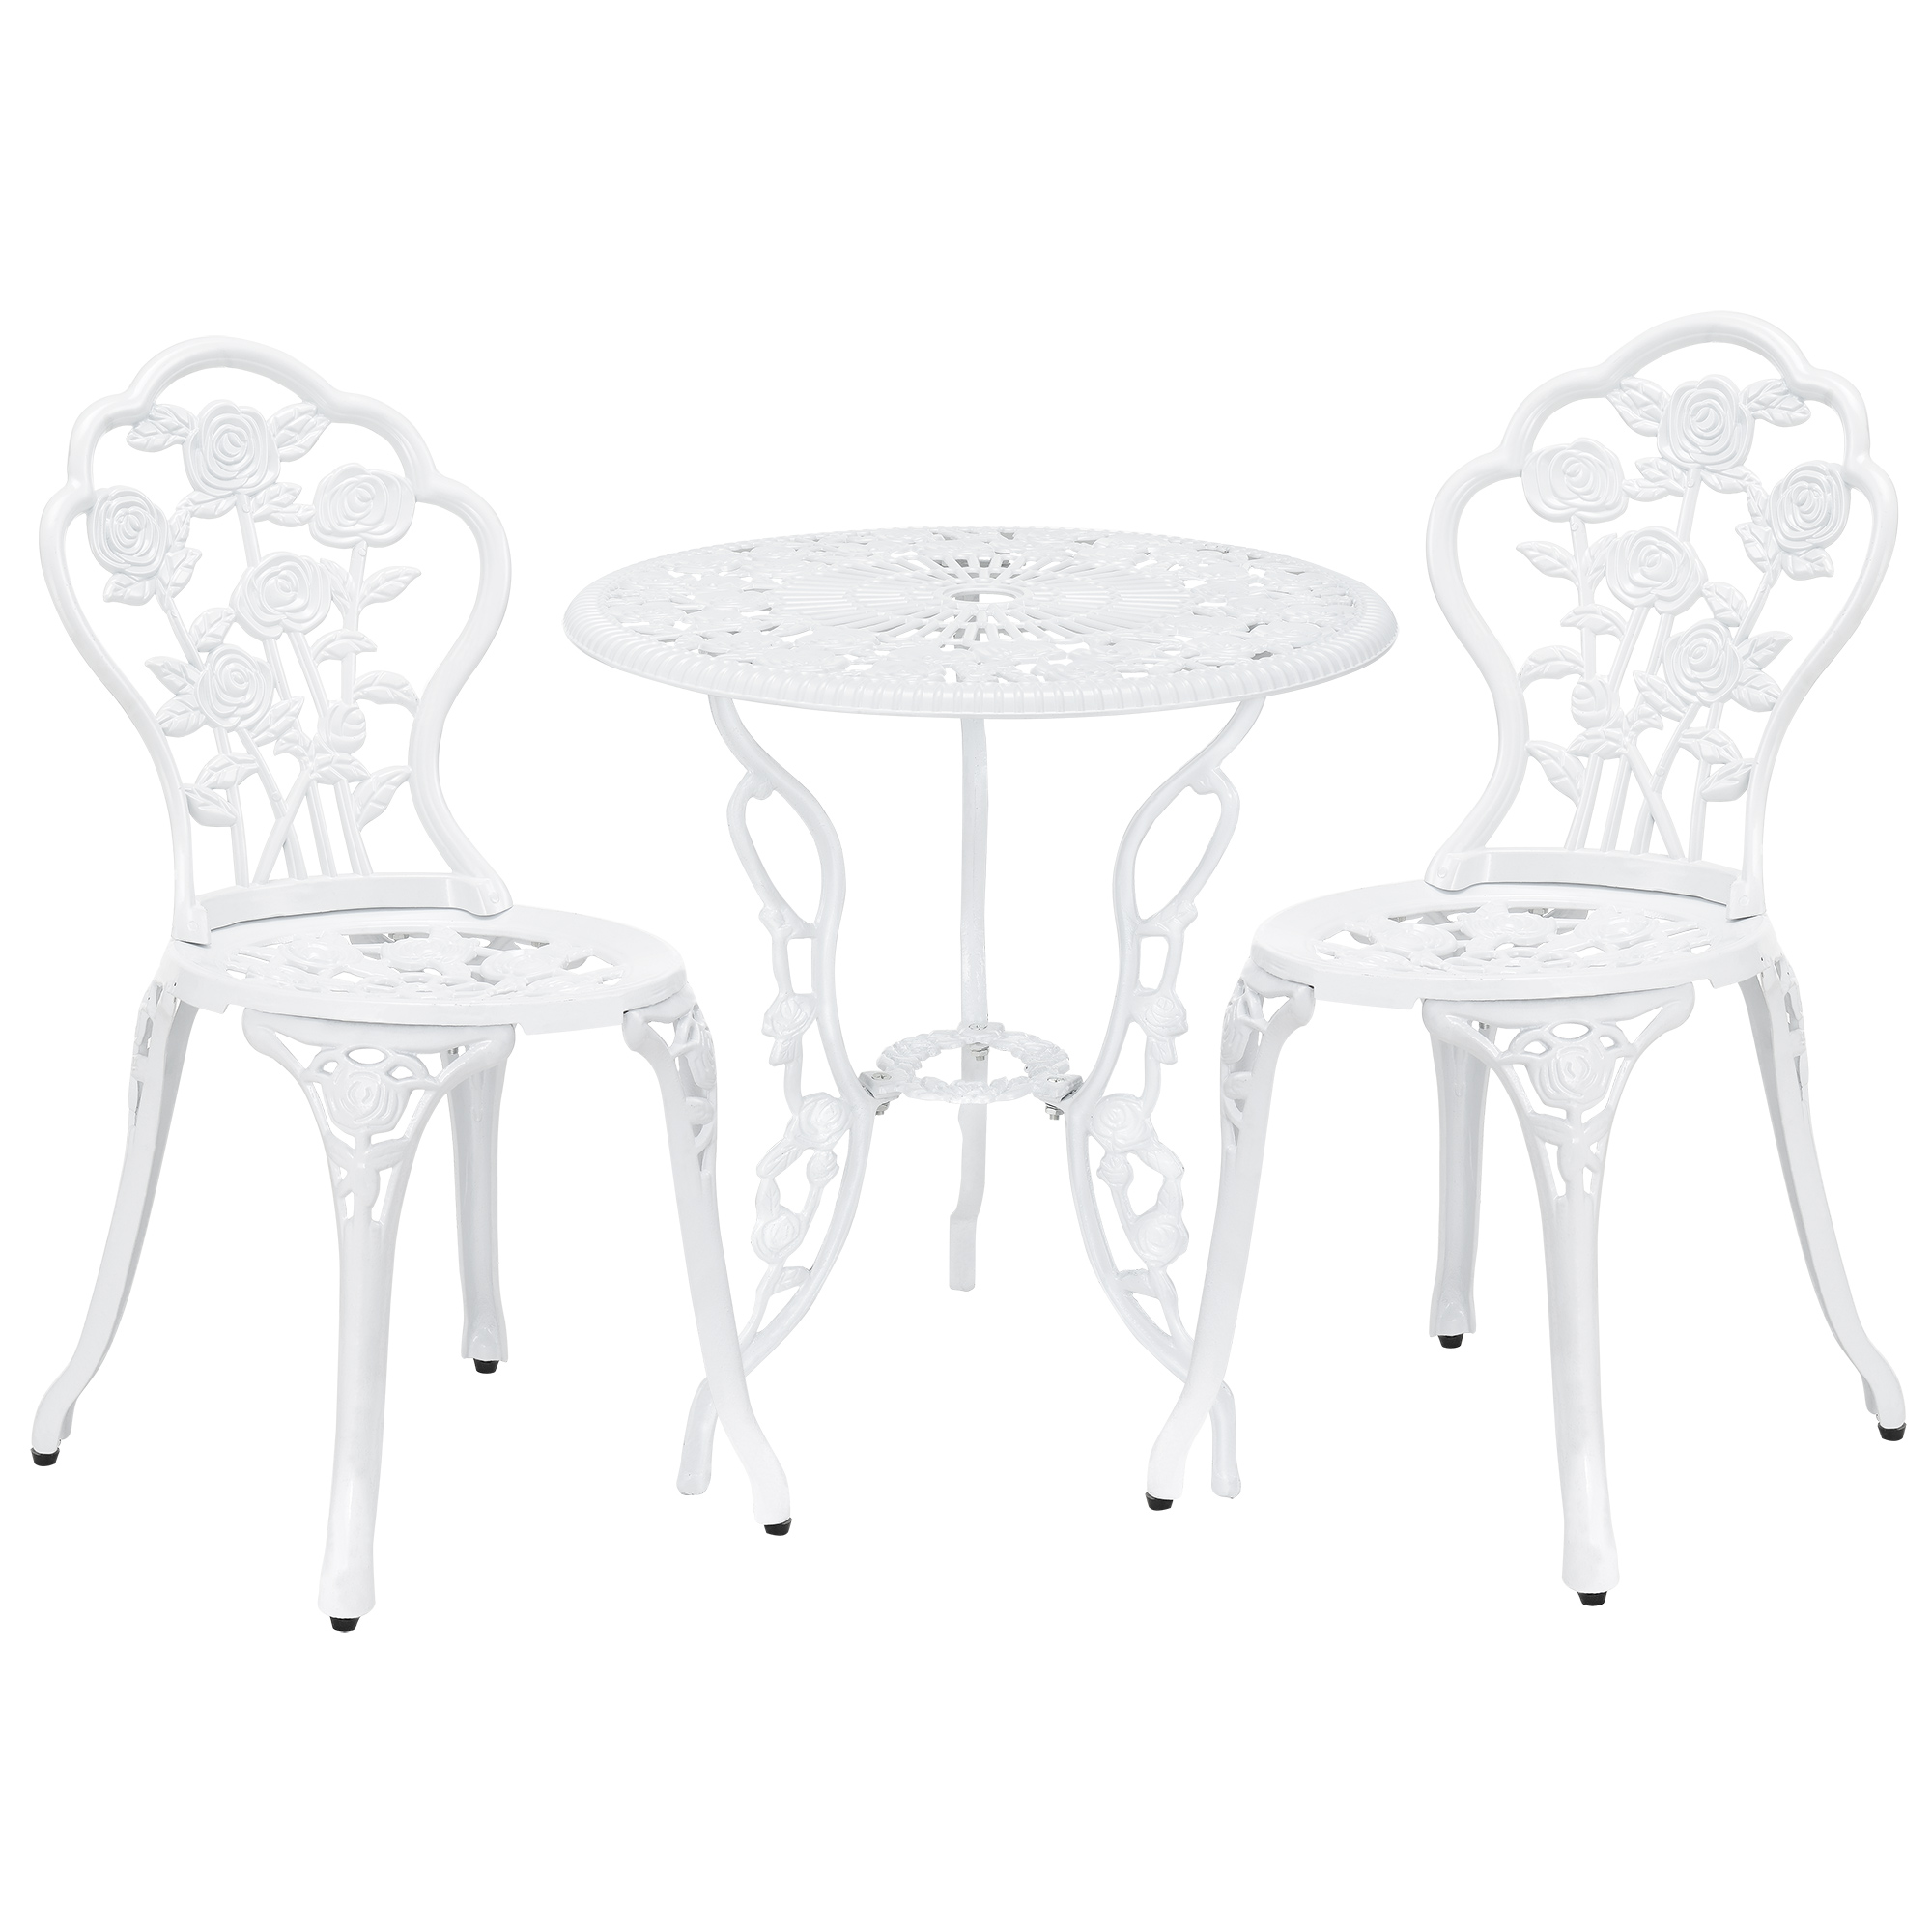 tisch 2 st hle bank antik weiss gr n bistro set garten sitzgarnitur alu guss ebay. Black Bedroom Furniture Sets. Home Design Ideas